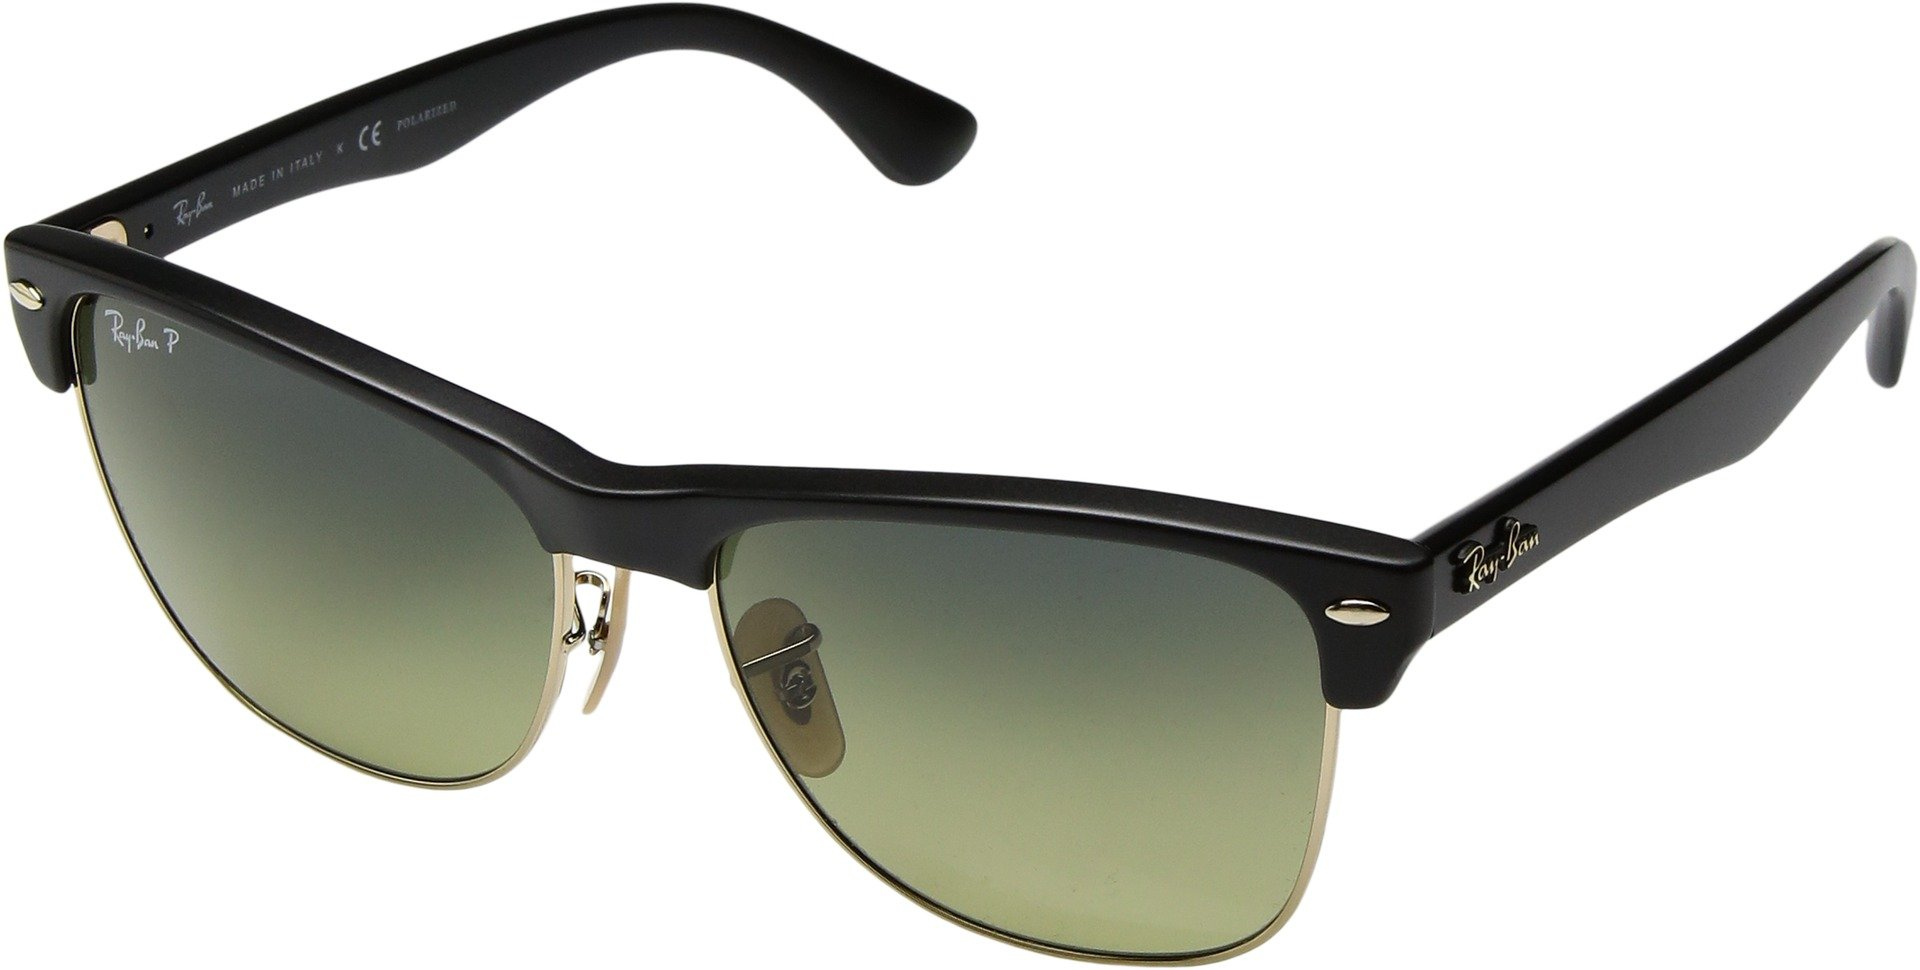 Ray-Ban Unisex RB4175 Oversized Clubmaster 57mm Black/Polarized Blue Green Gradient Sunglasses by Ray-Ban